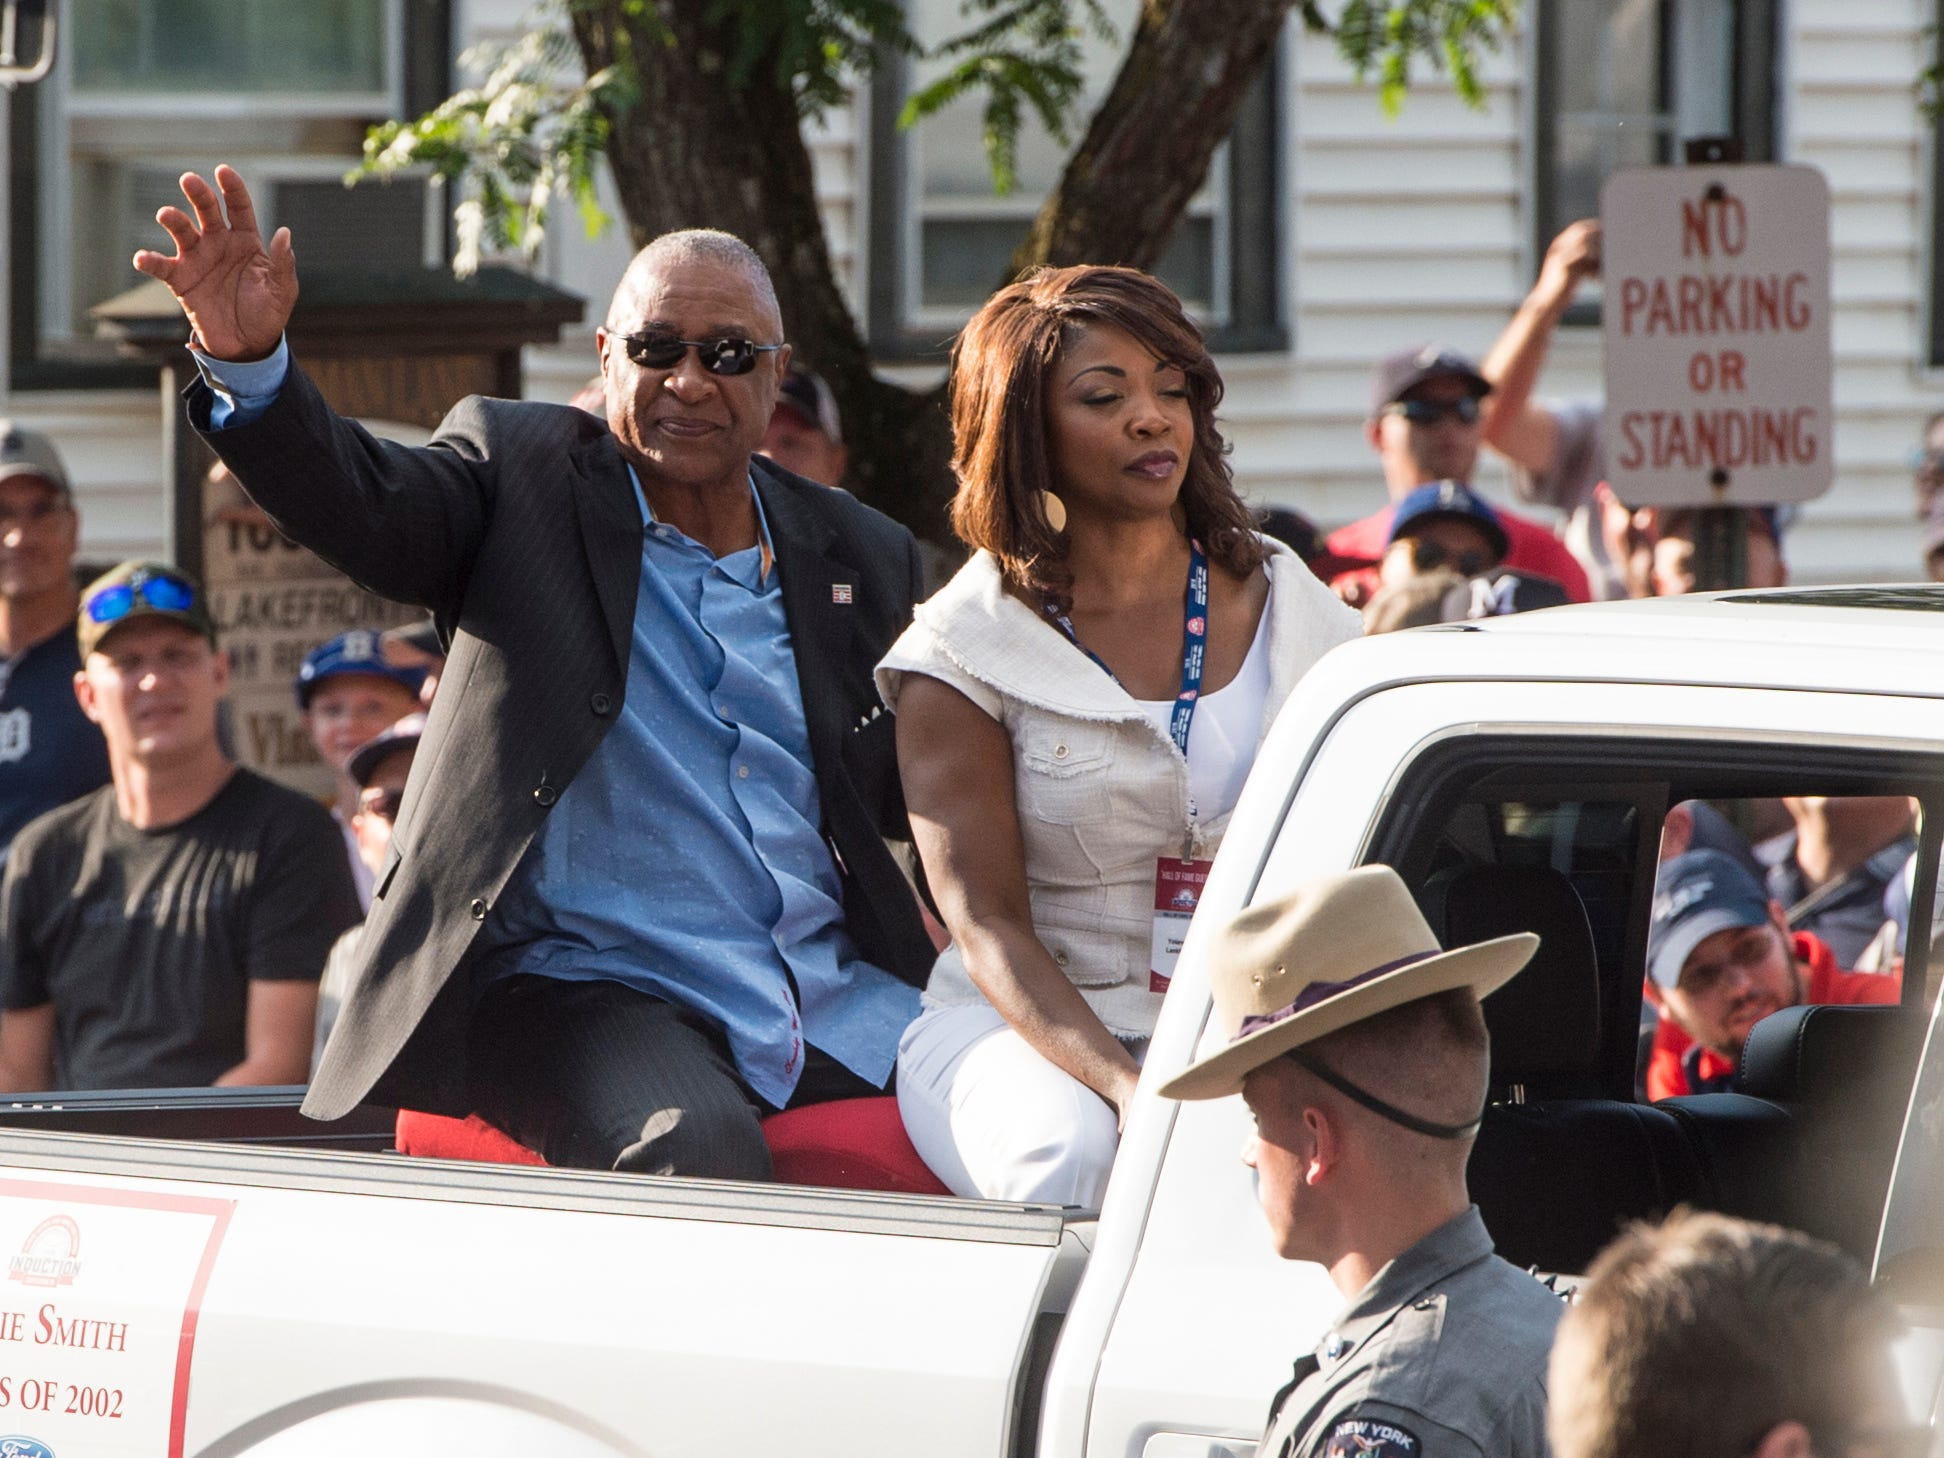 Hall of Fame member Ozzie Smith (left) arrives at National Baseball Hall of Fame.